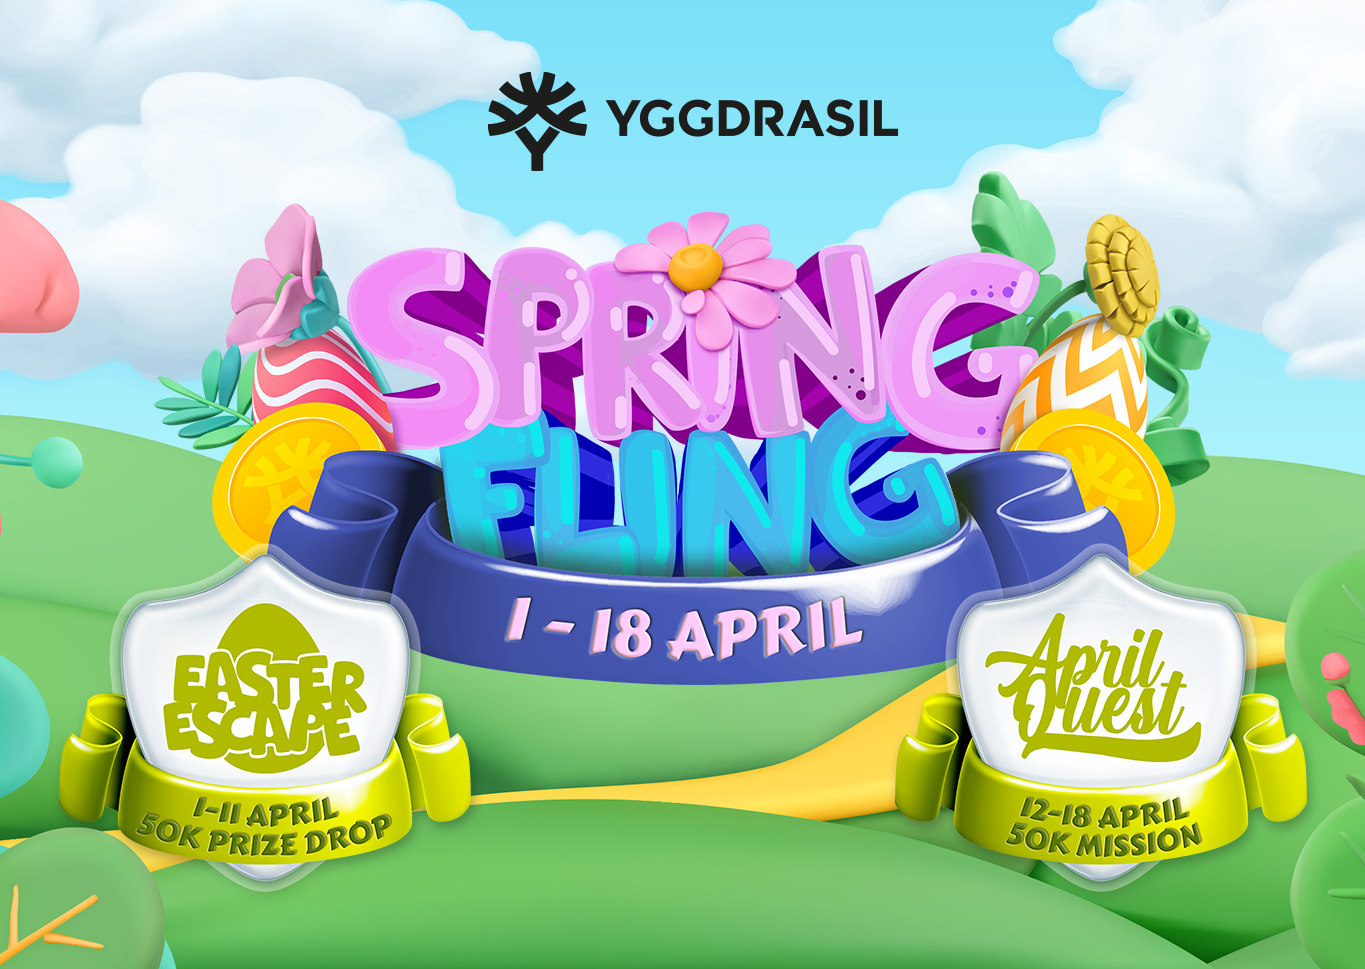 EASTER with YGGDRASIL AND 100K